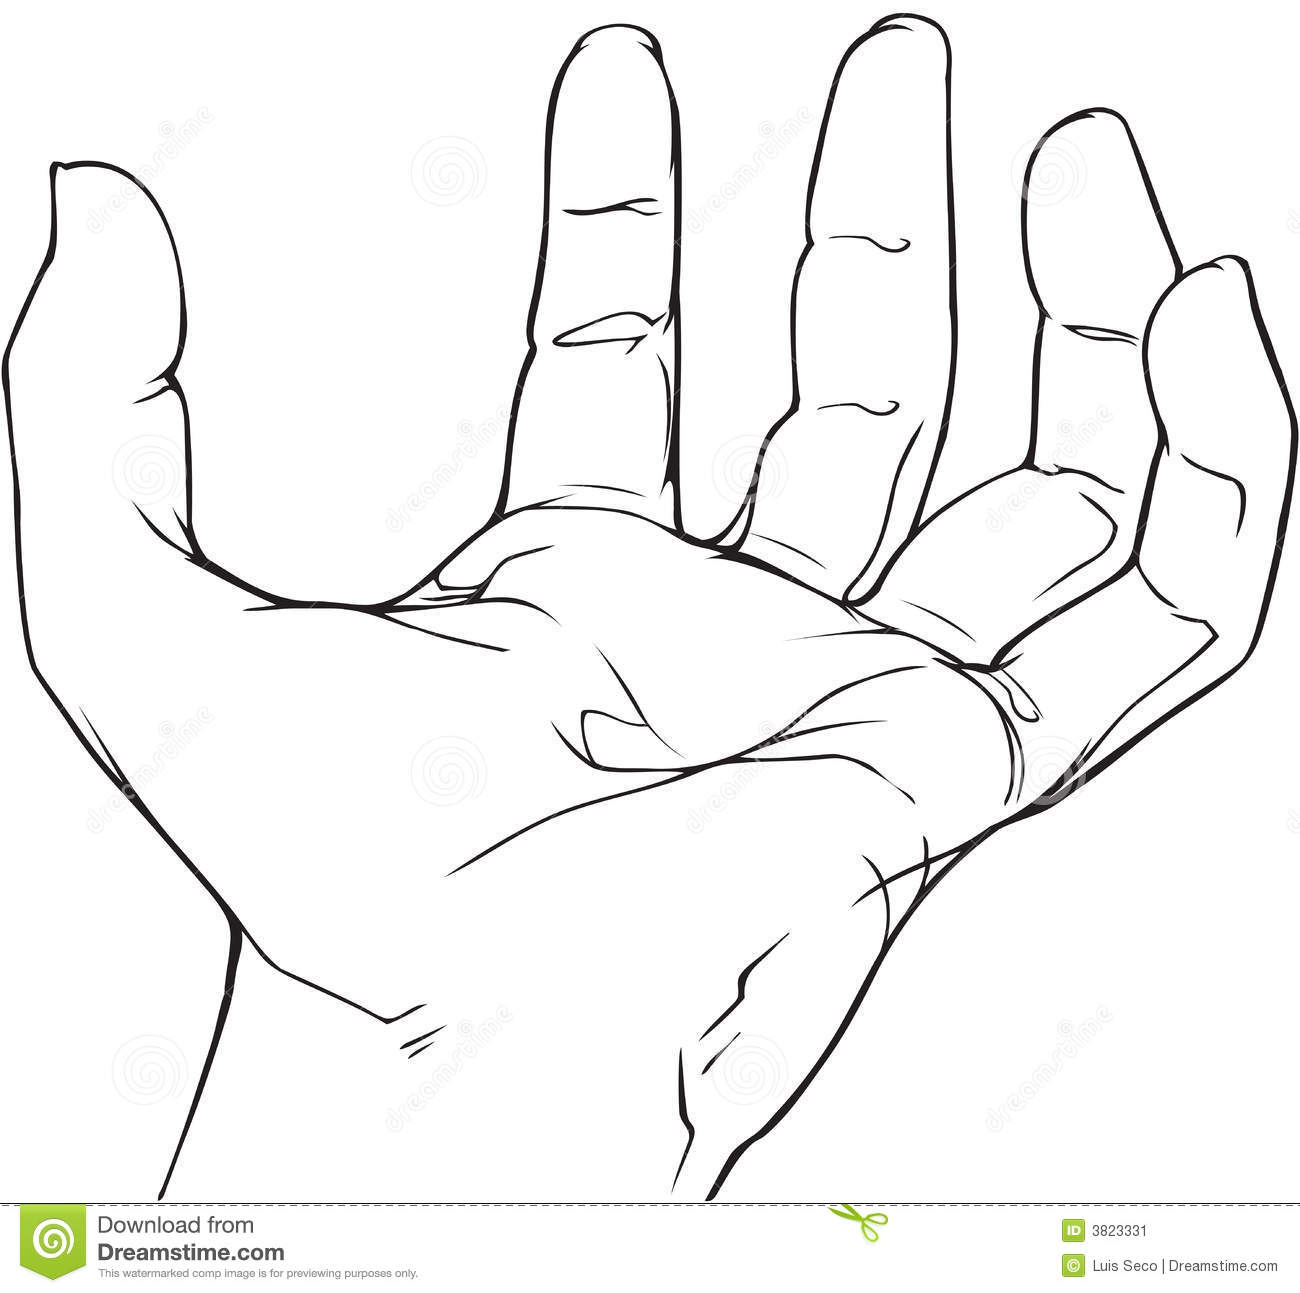 Hand outline 2